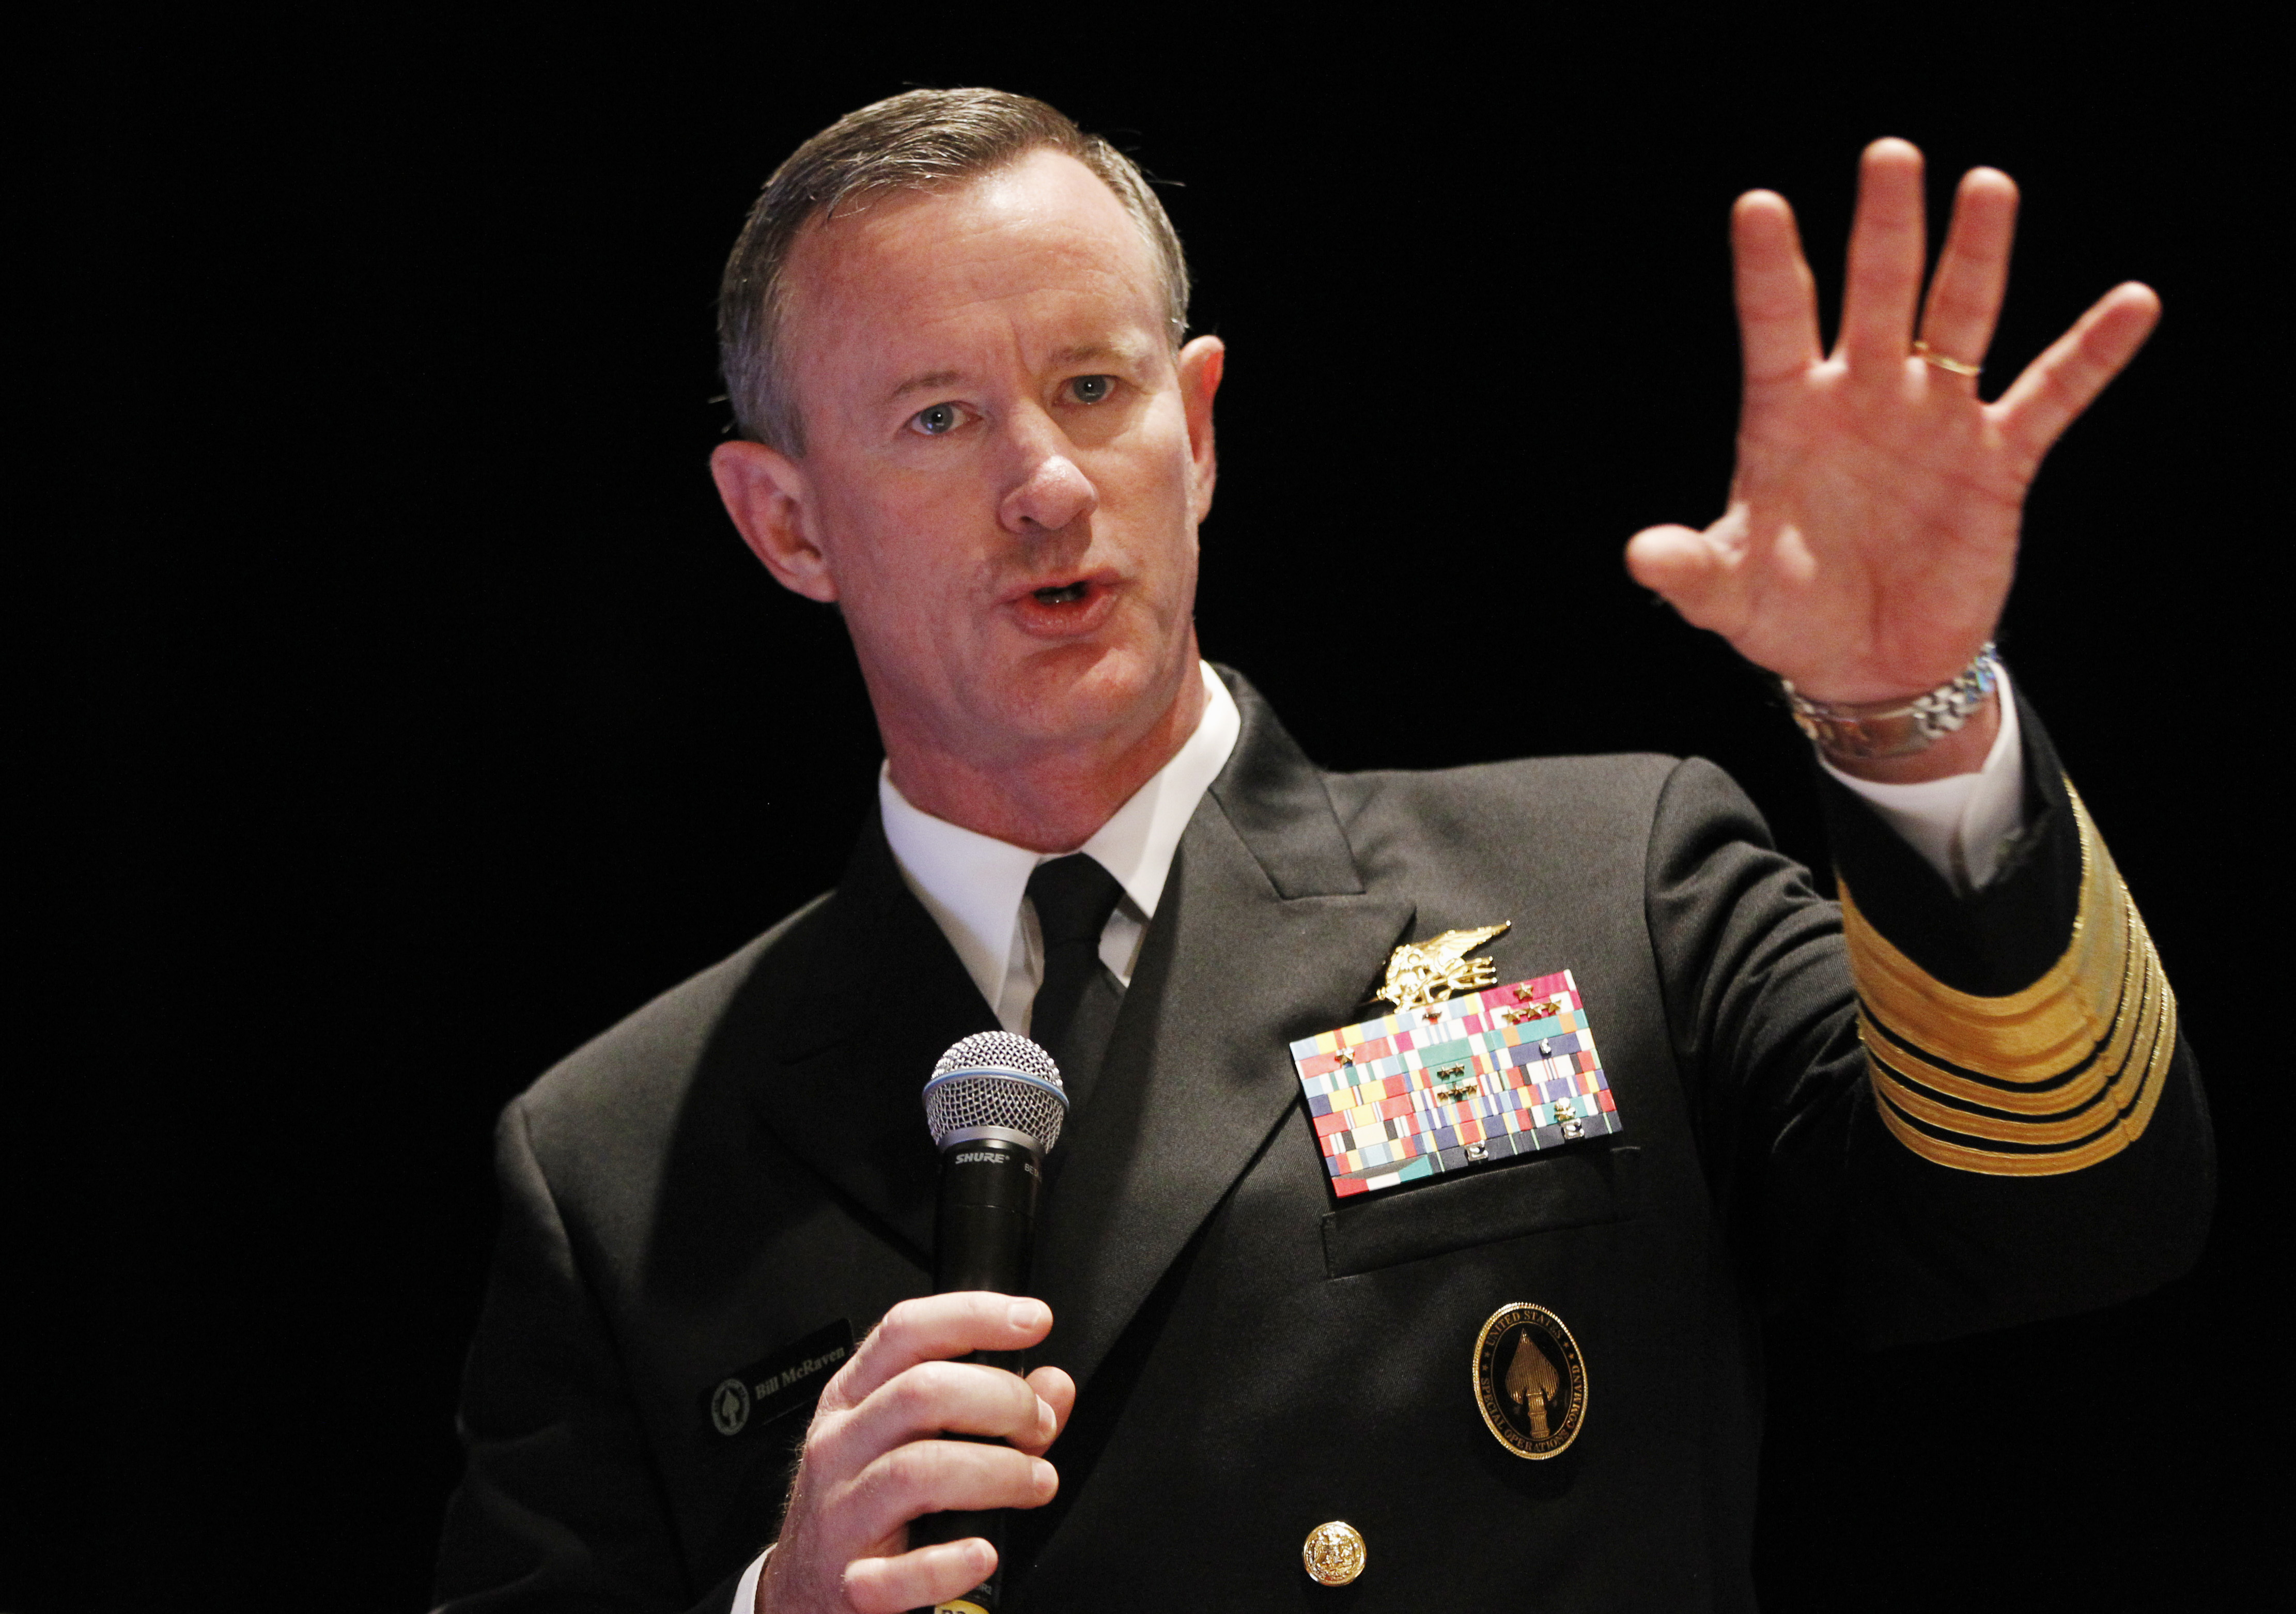 Bin Laden Book Prompts Warning From Seals Chief Cbs News